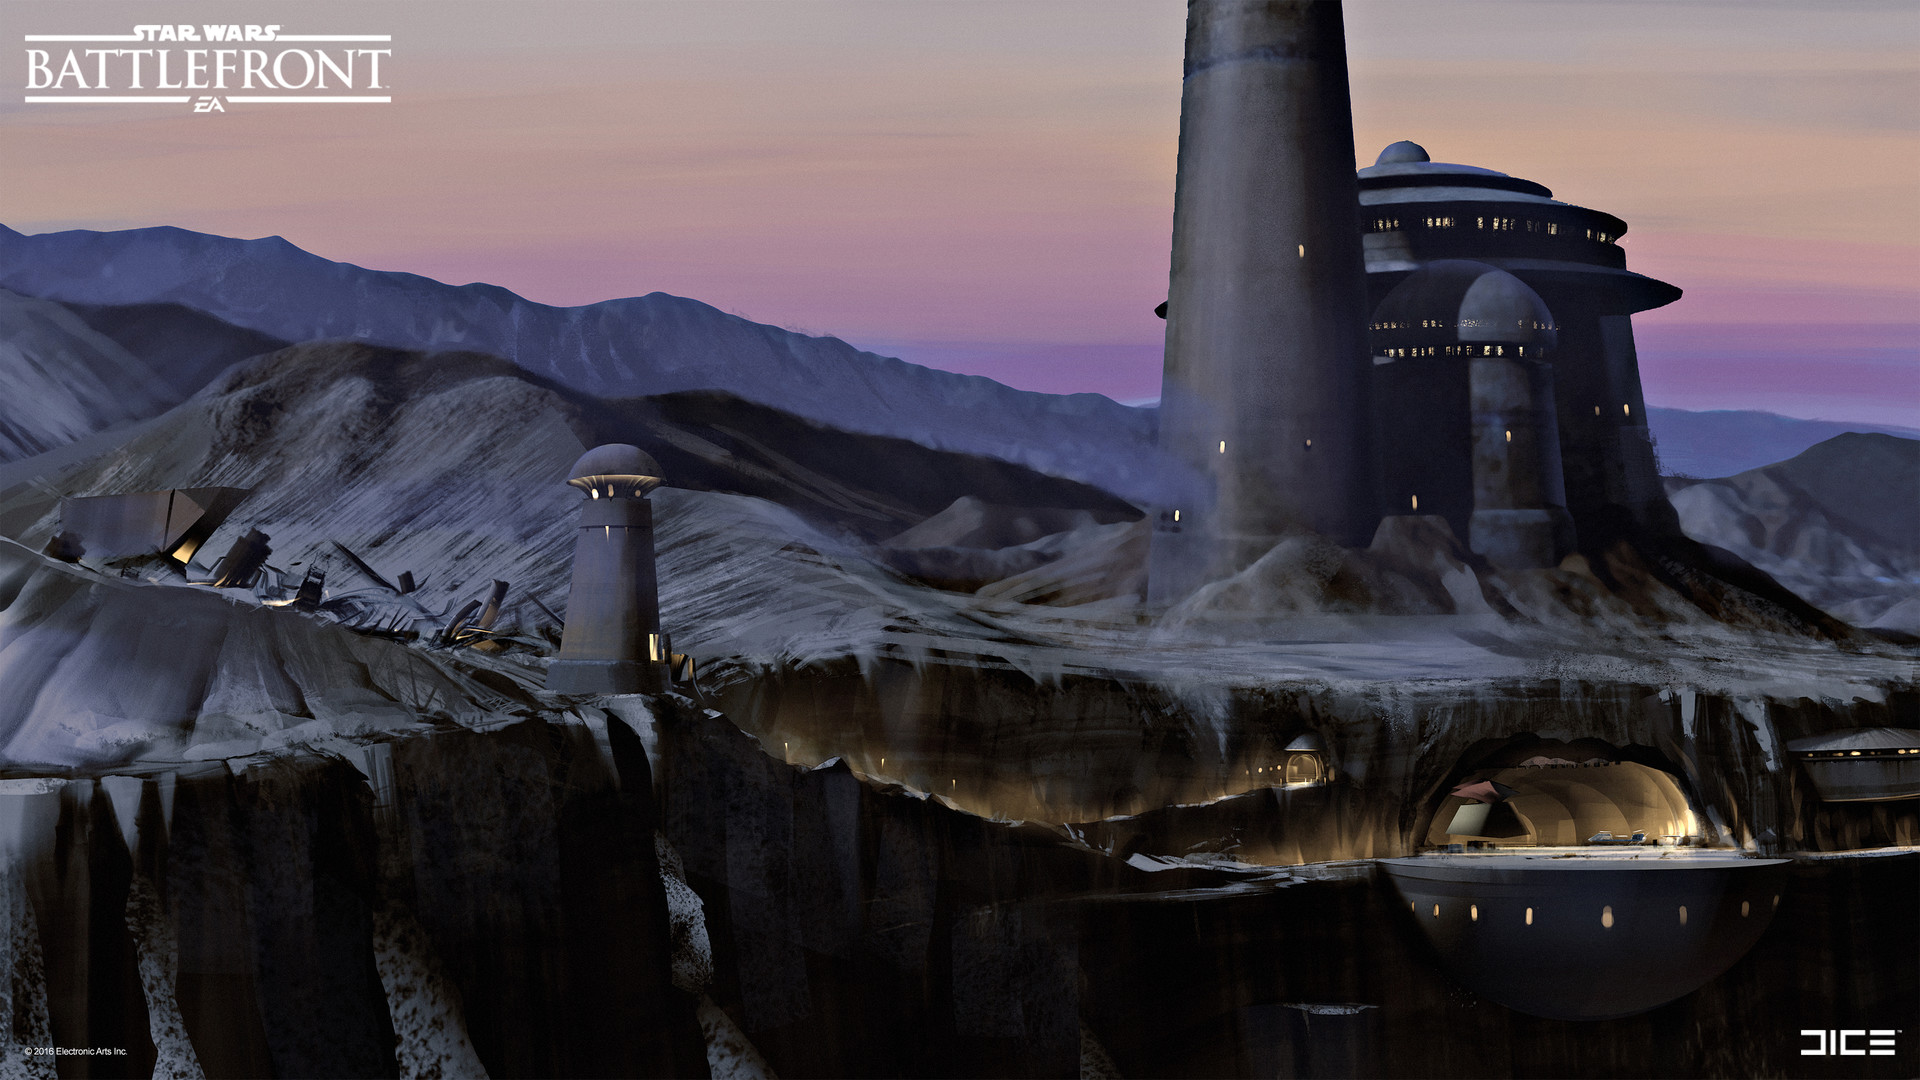 artstation - jabba's palace concept art for the star wars